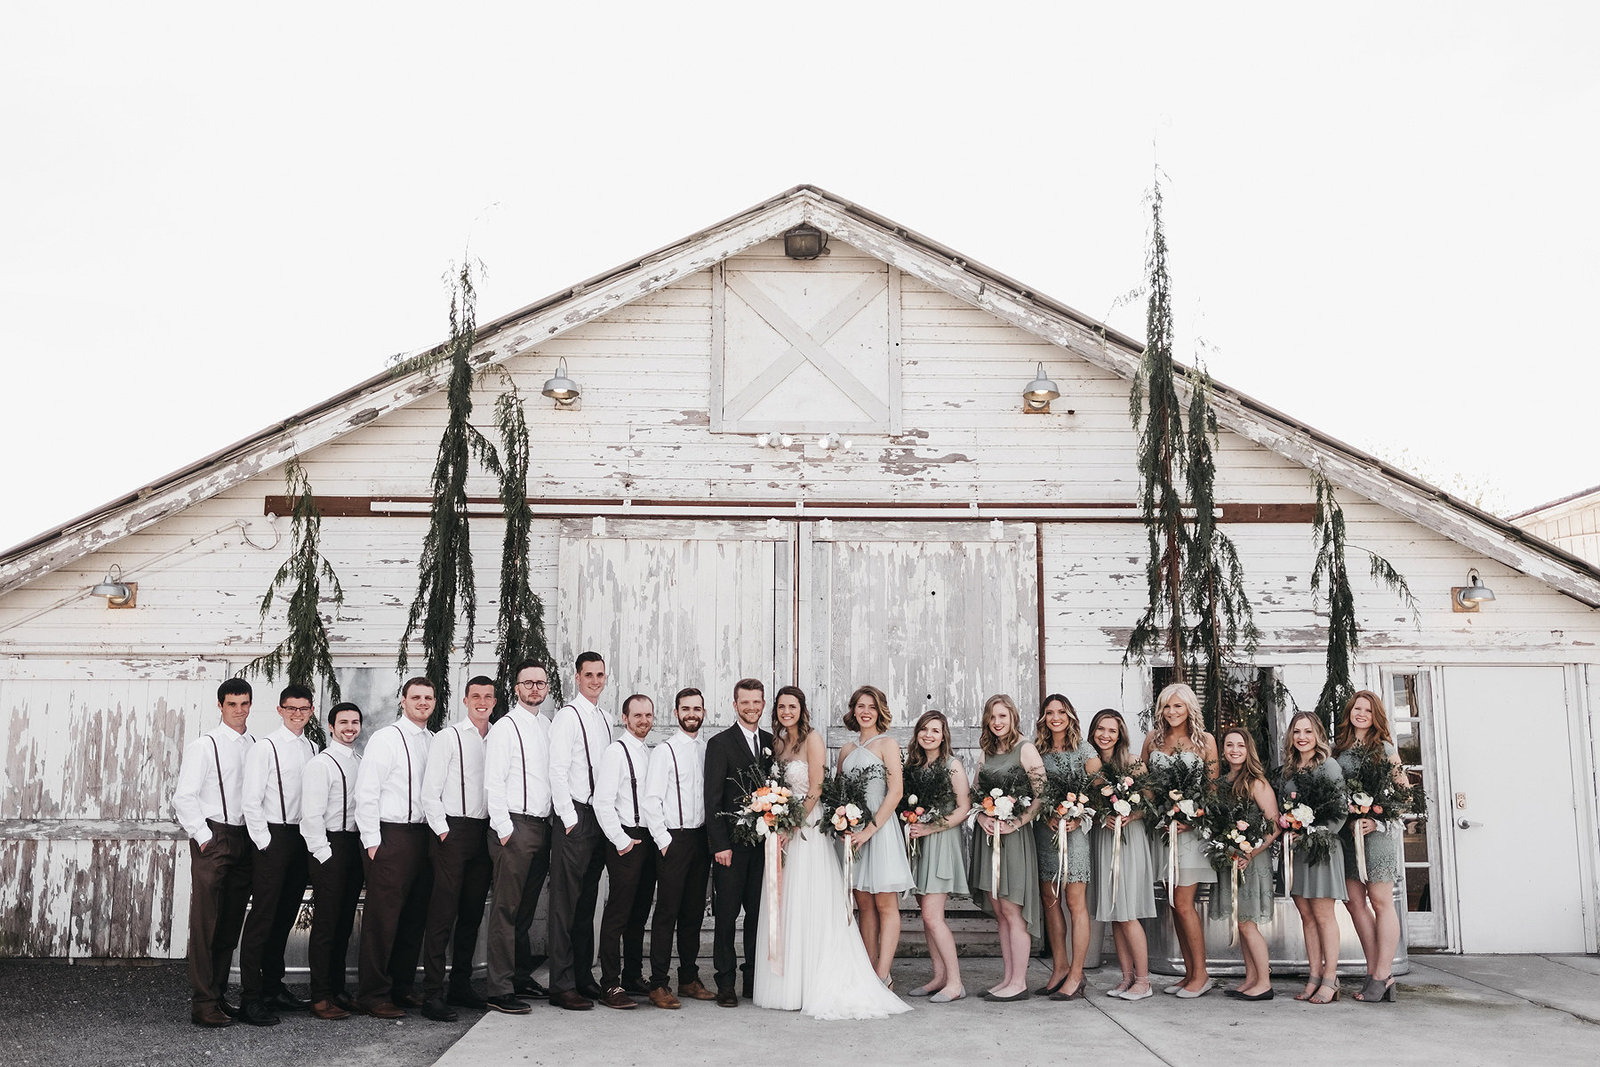 athena-and-camron-seattle-wedding-photographer-dairyland-snohomish-rustic-barn-wedding-flowers-styling-inspiration-lauren-madison-48